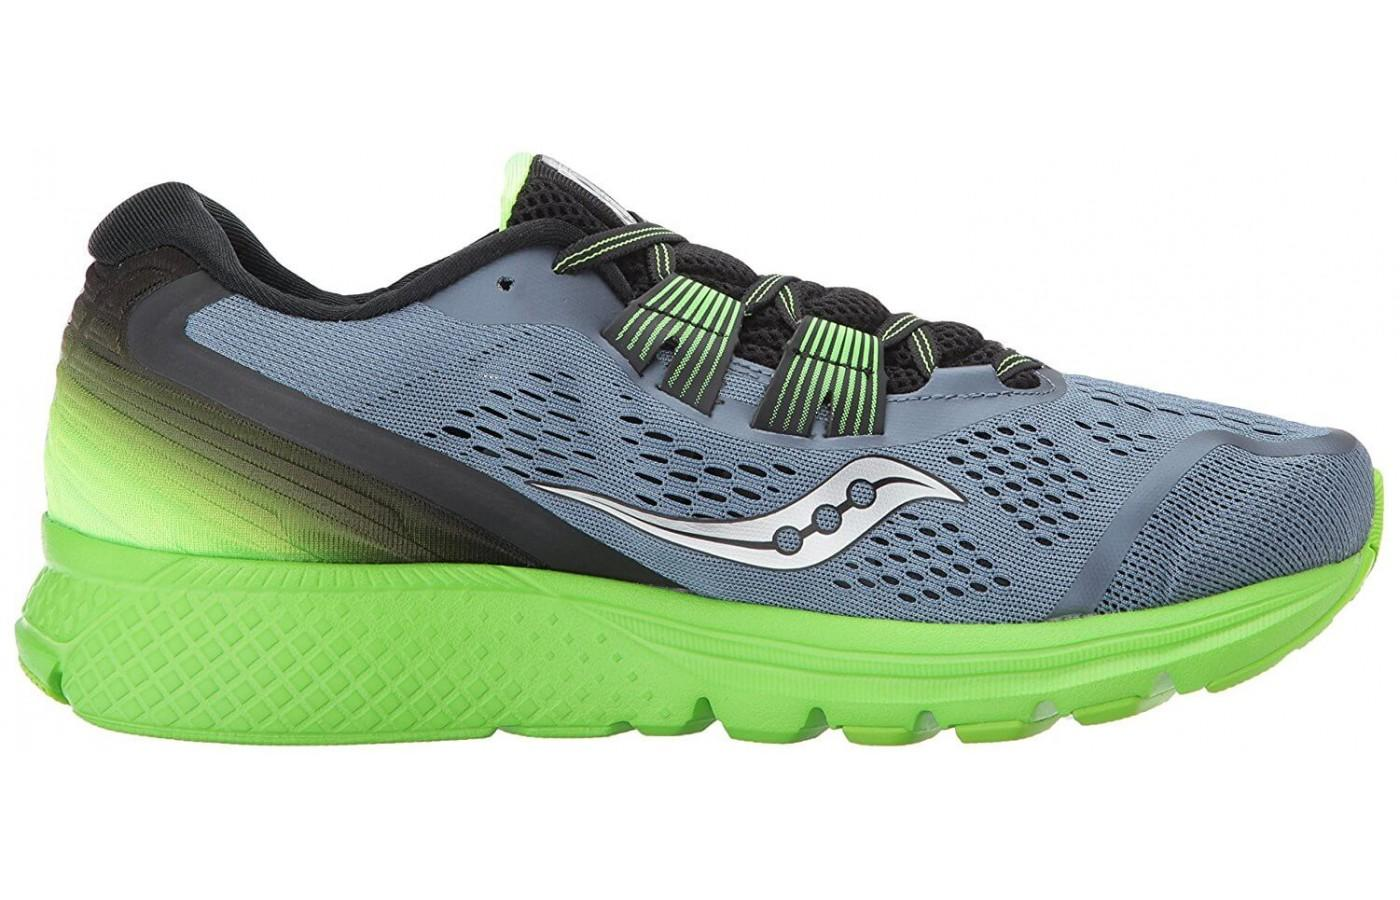 Breathable upper keeps the foot cool and dry.